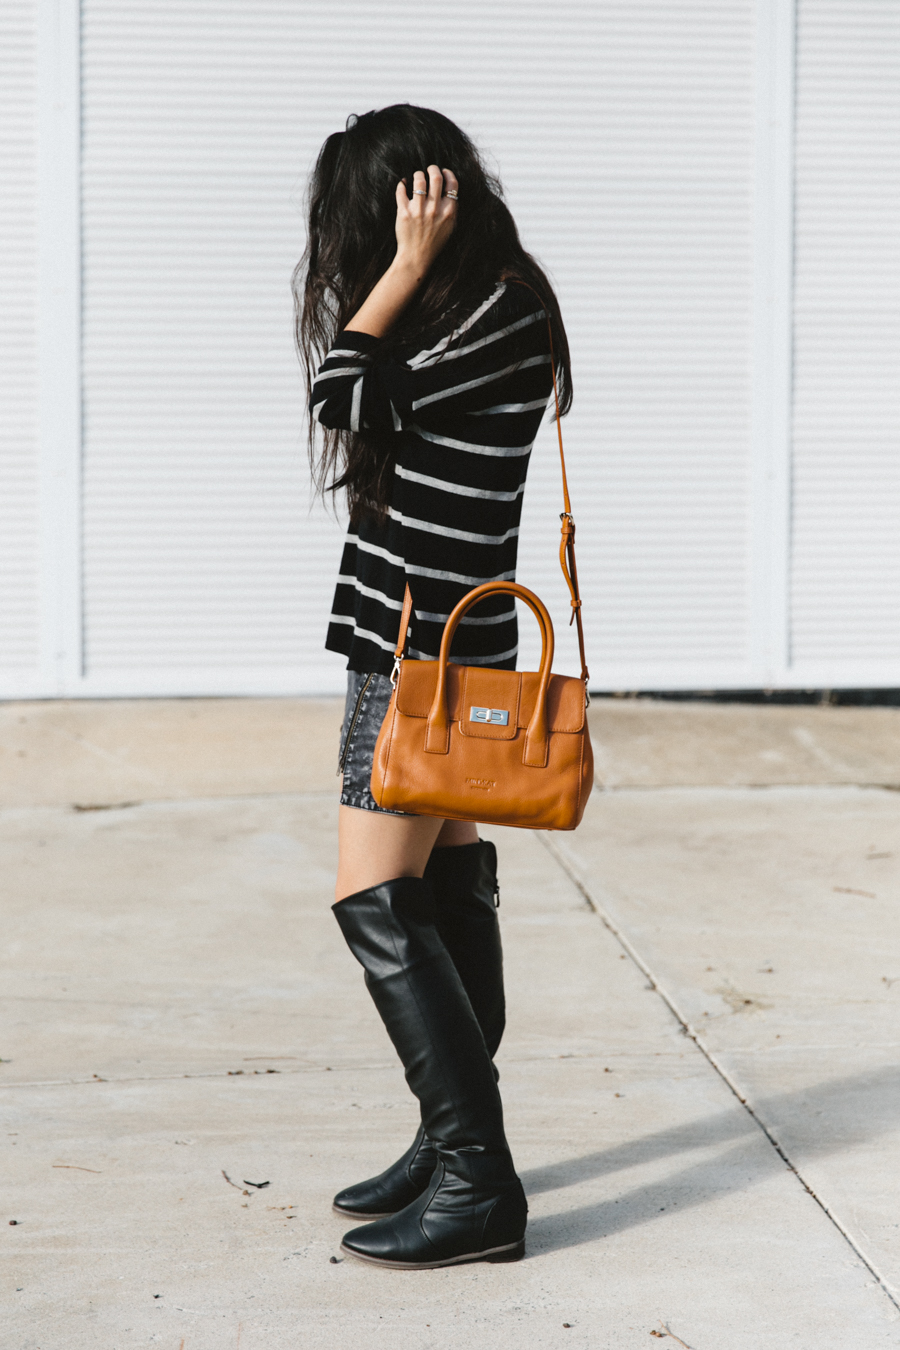 Black stripe top with denim mini skirt & knee high boots.